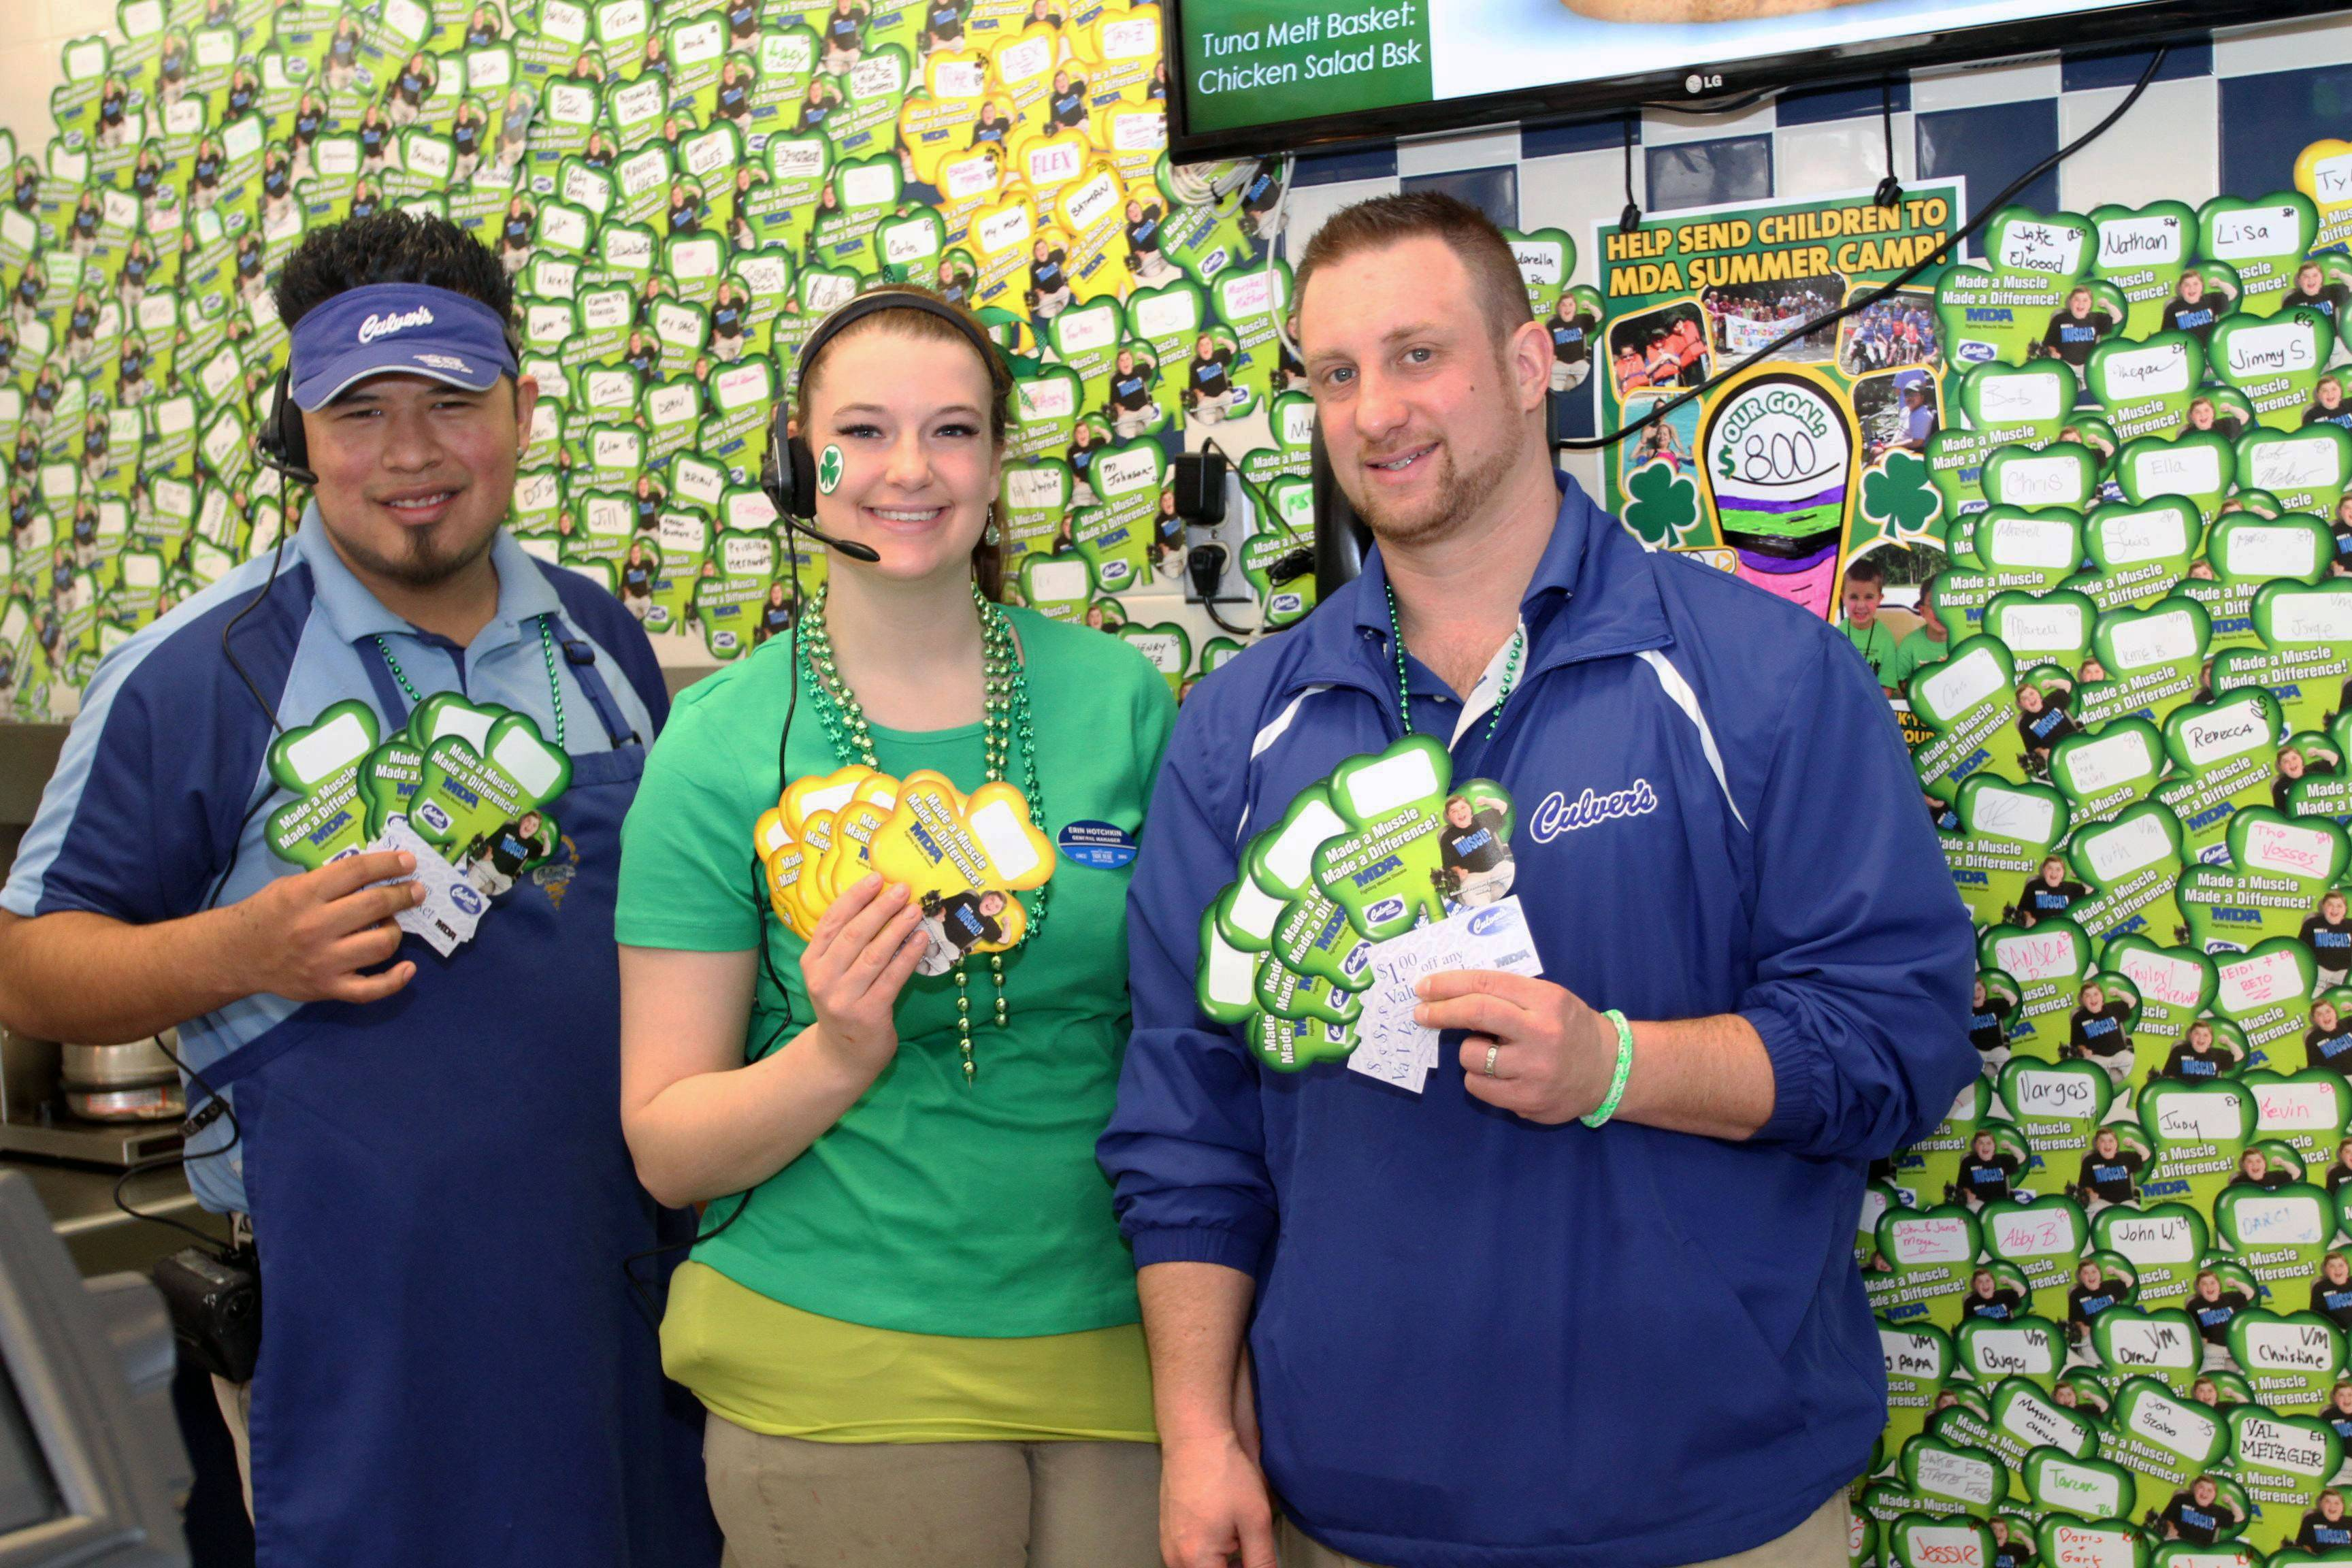 Culver's of Palatine owner Zach Steffens is joined by Erin Hotchkin and Cesar Reyes as they display countless shamrocks supporting MDA.